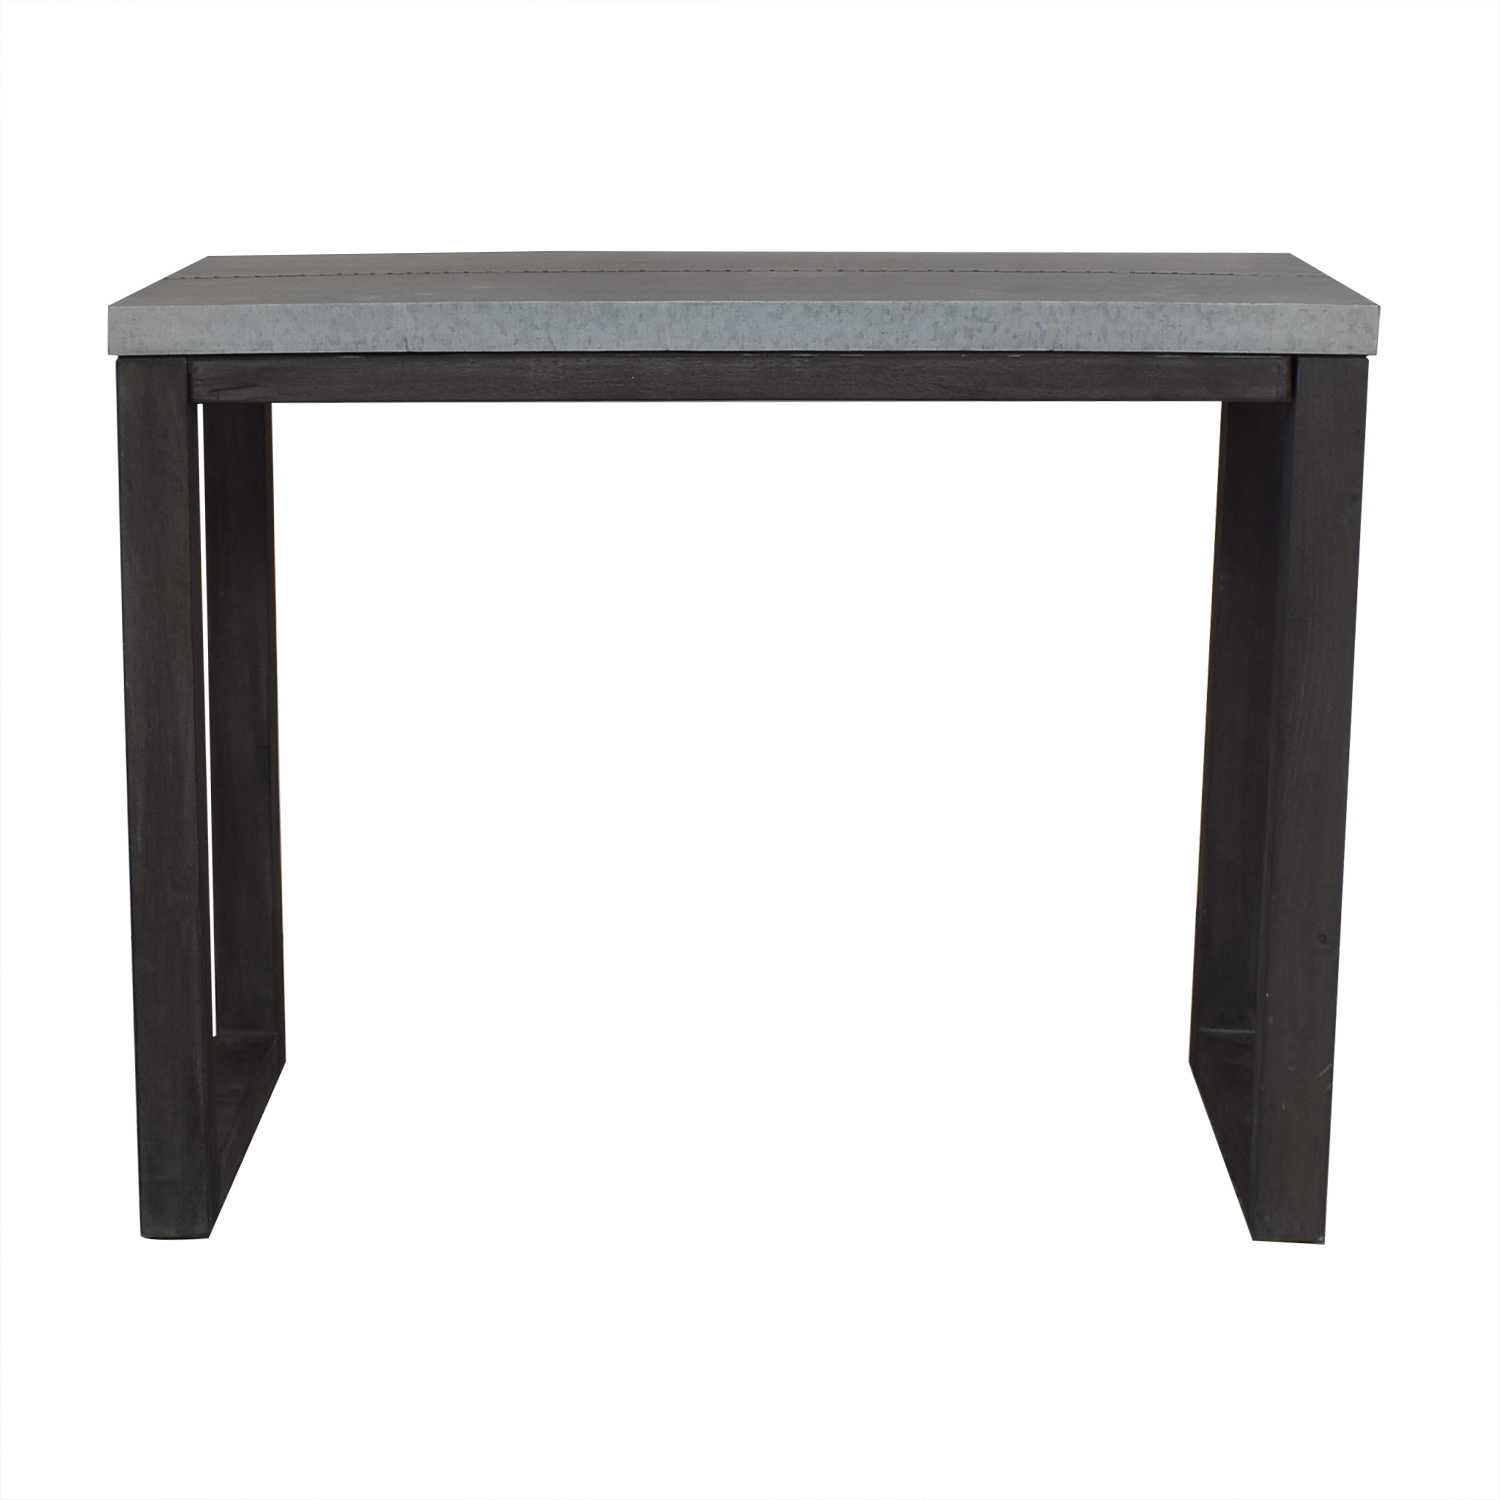 CB2 CB2 Steel Top Table price